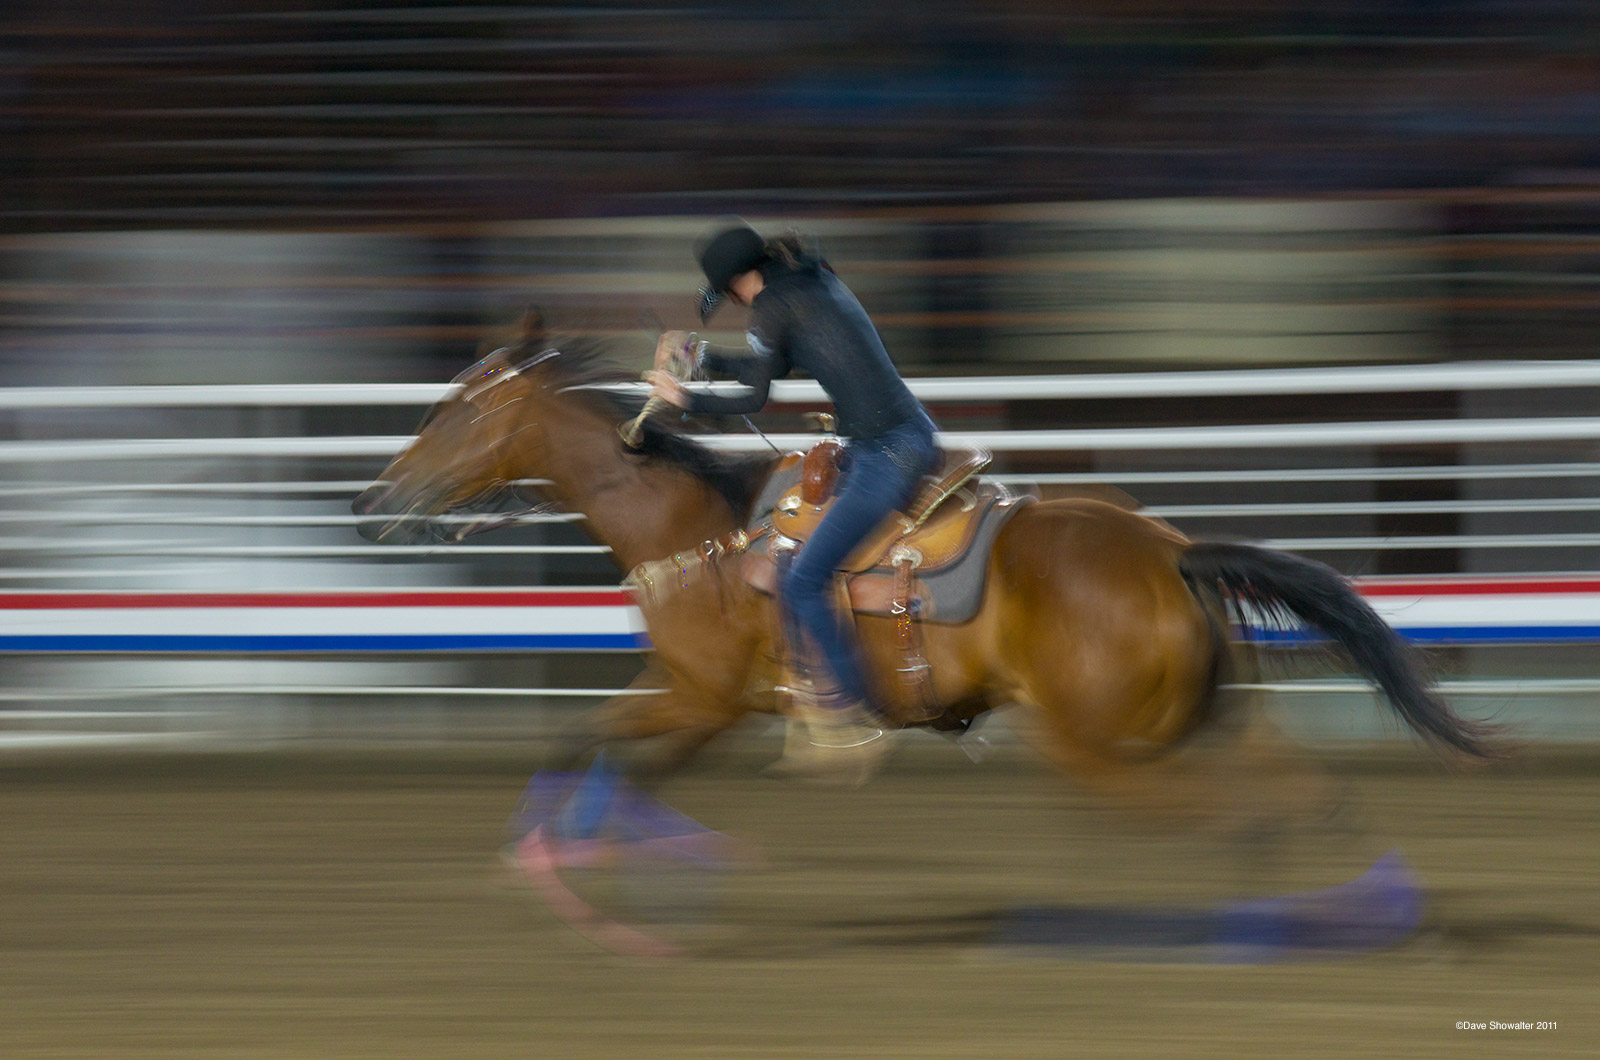 Cody nite rodeo, barrel race, photo